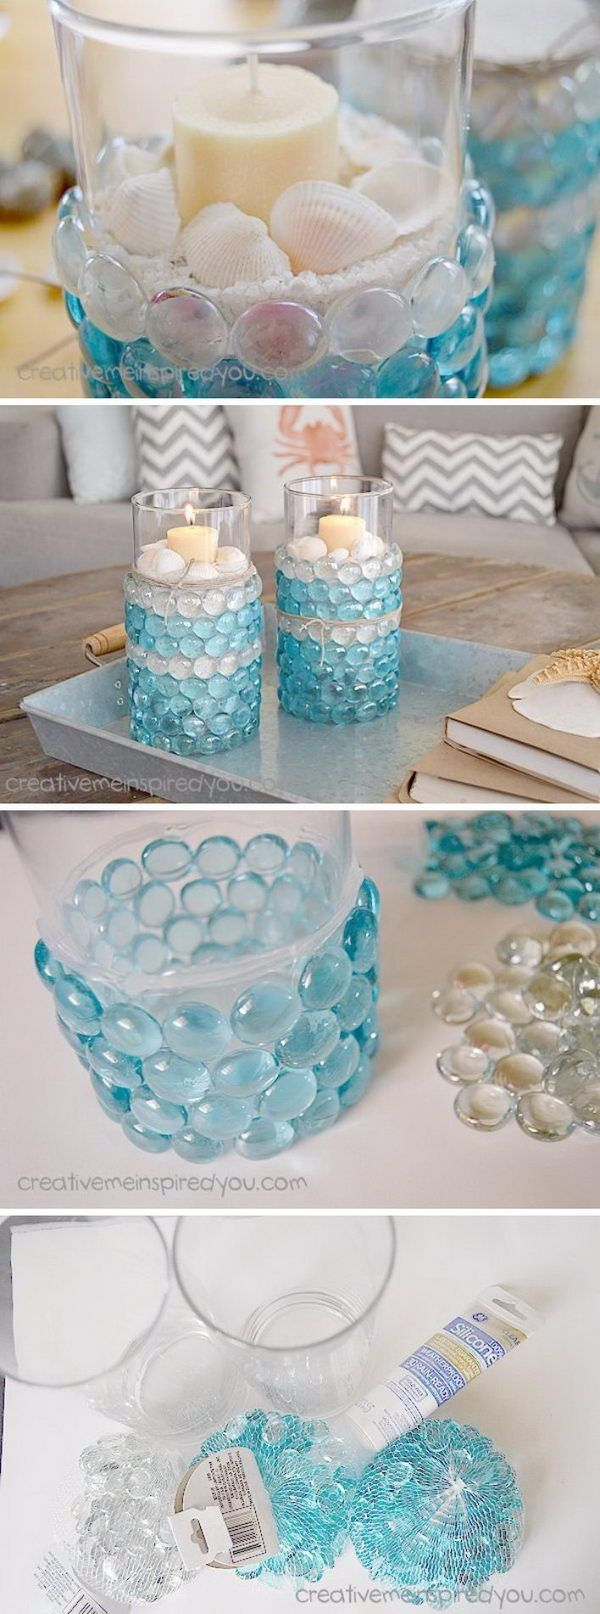 60+ Nautical Decor DIY Ideas To Spruce Up Your Home 2017